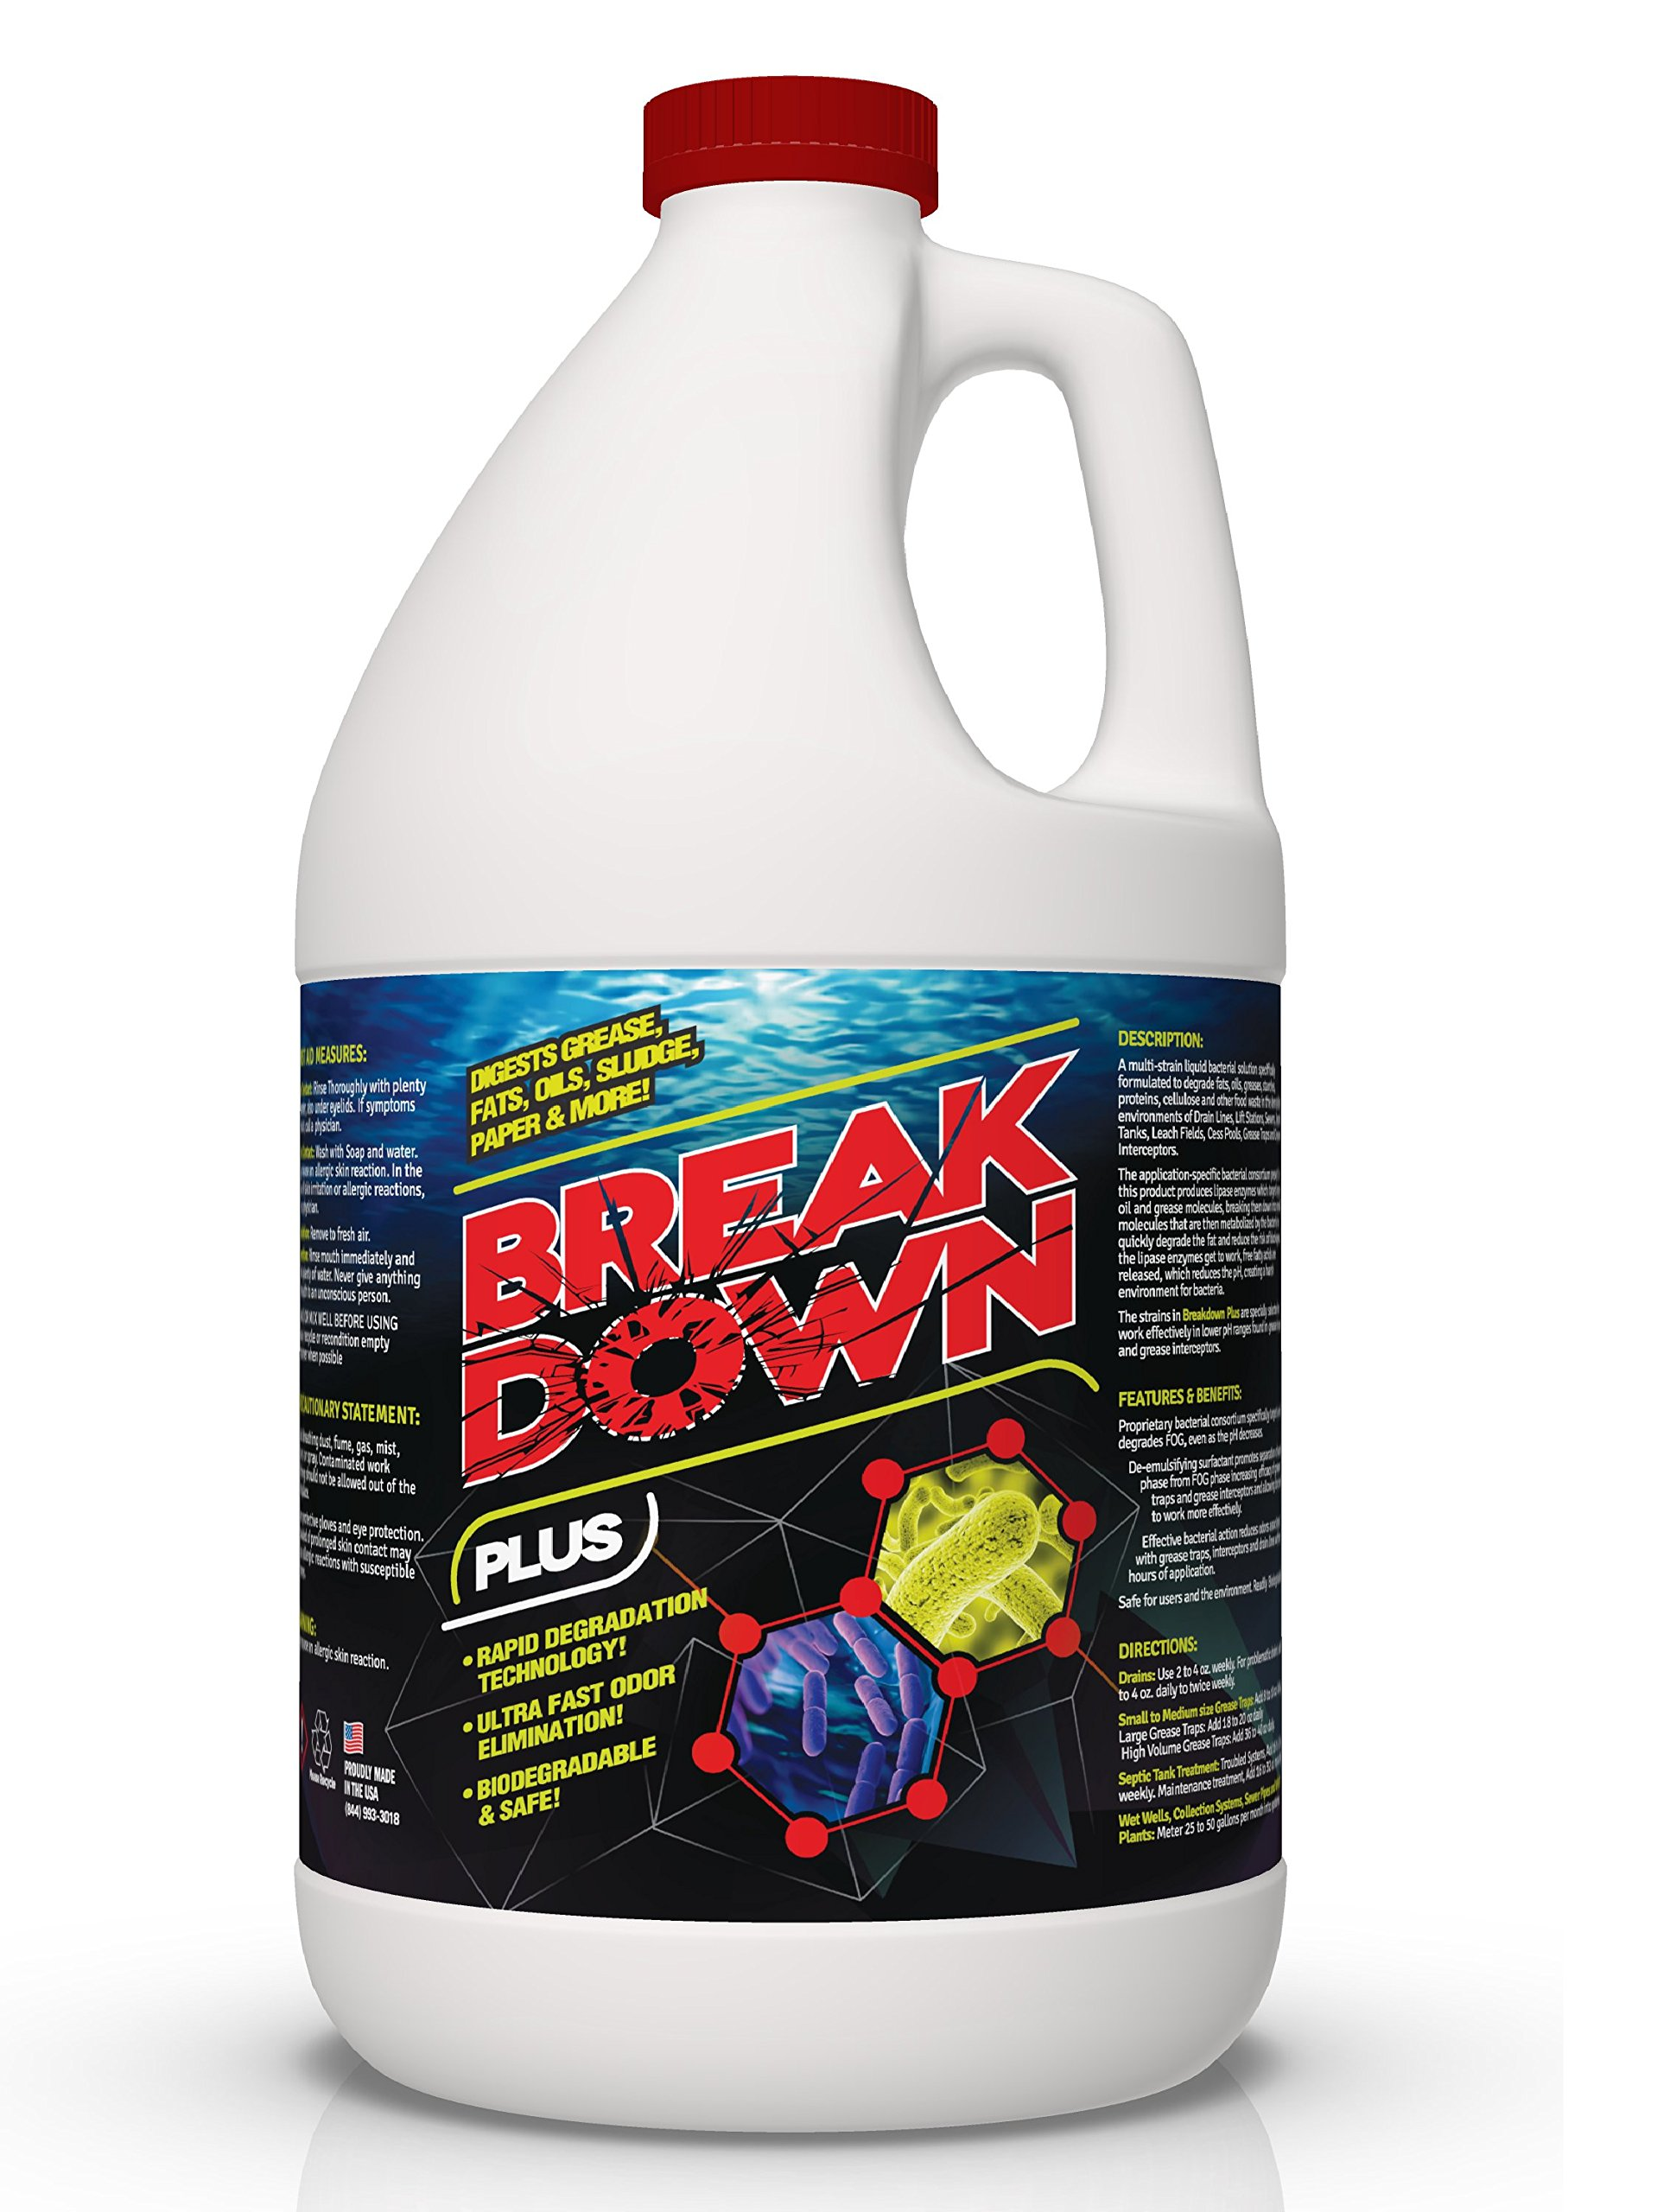 Concentrated Liquid Bacterial ENZYMES - Breaks Down Grease, Paper,Fat & Oil in Drain Lines, Sewer Lines, Septic Tanks, Grease Traps, RV & Boat Tanks & More! Controls Foul Sewer Odors! (1 Gallon)